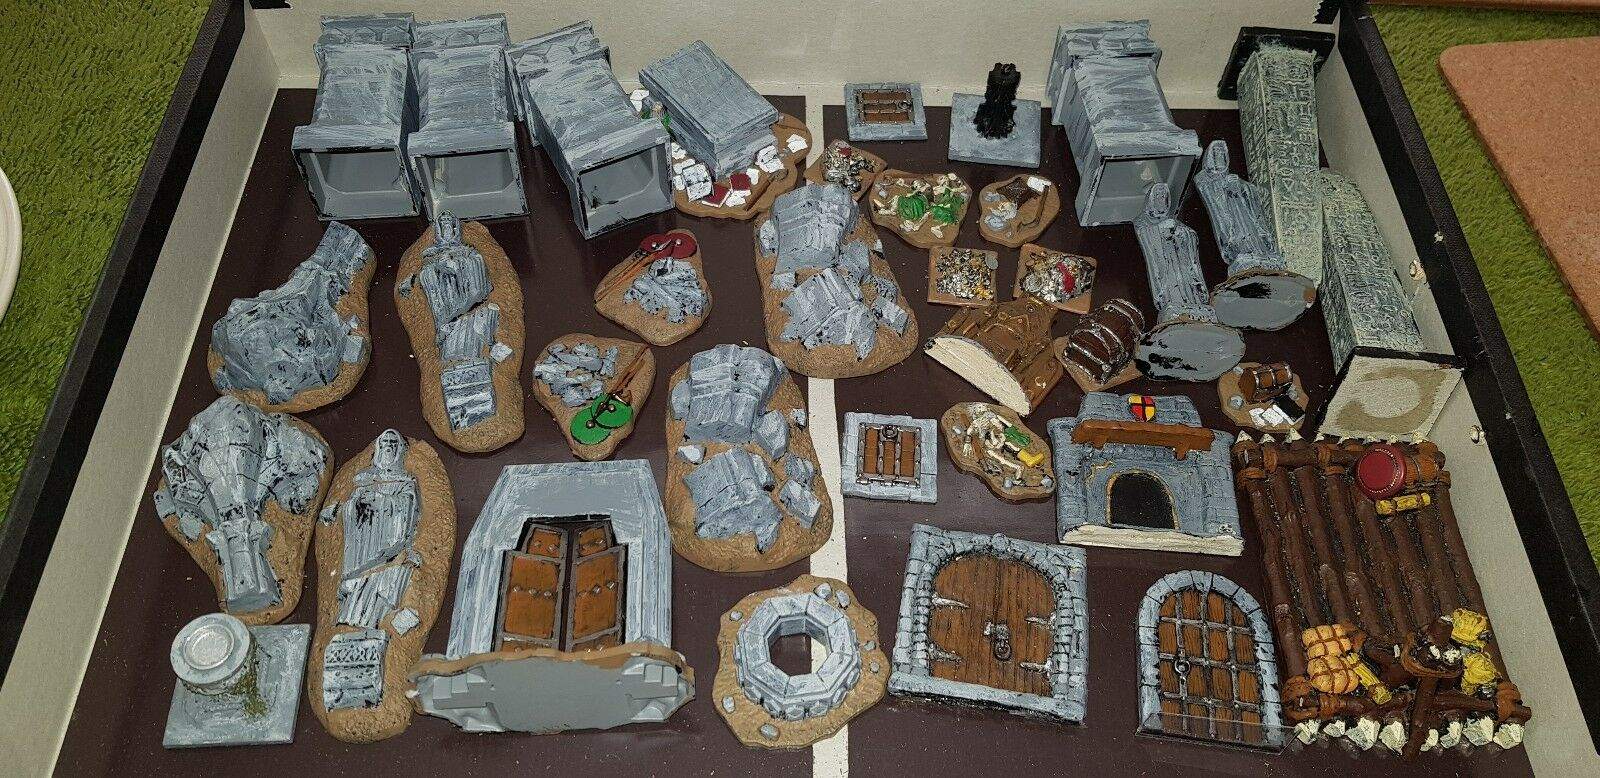 Lord of the Rings - Scenery and Props